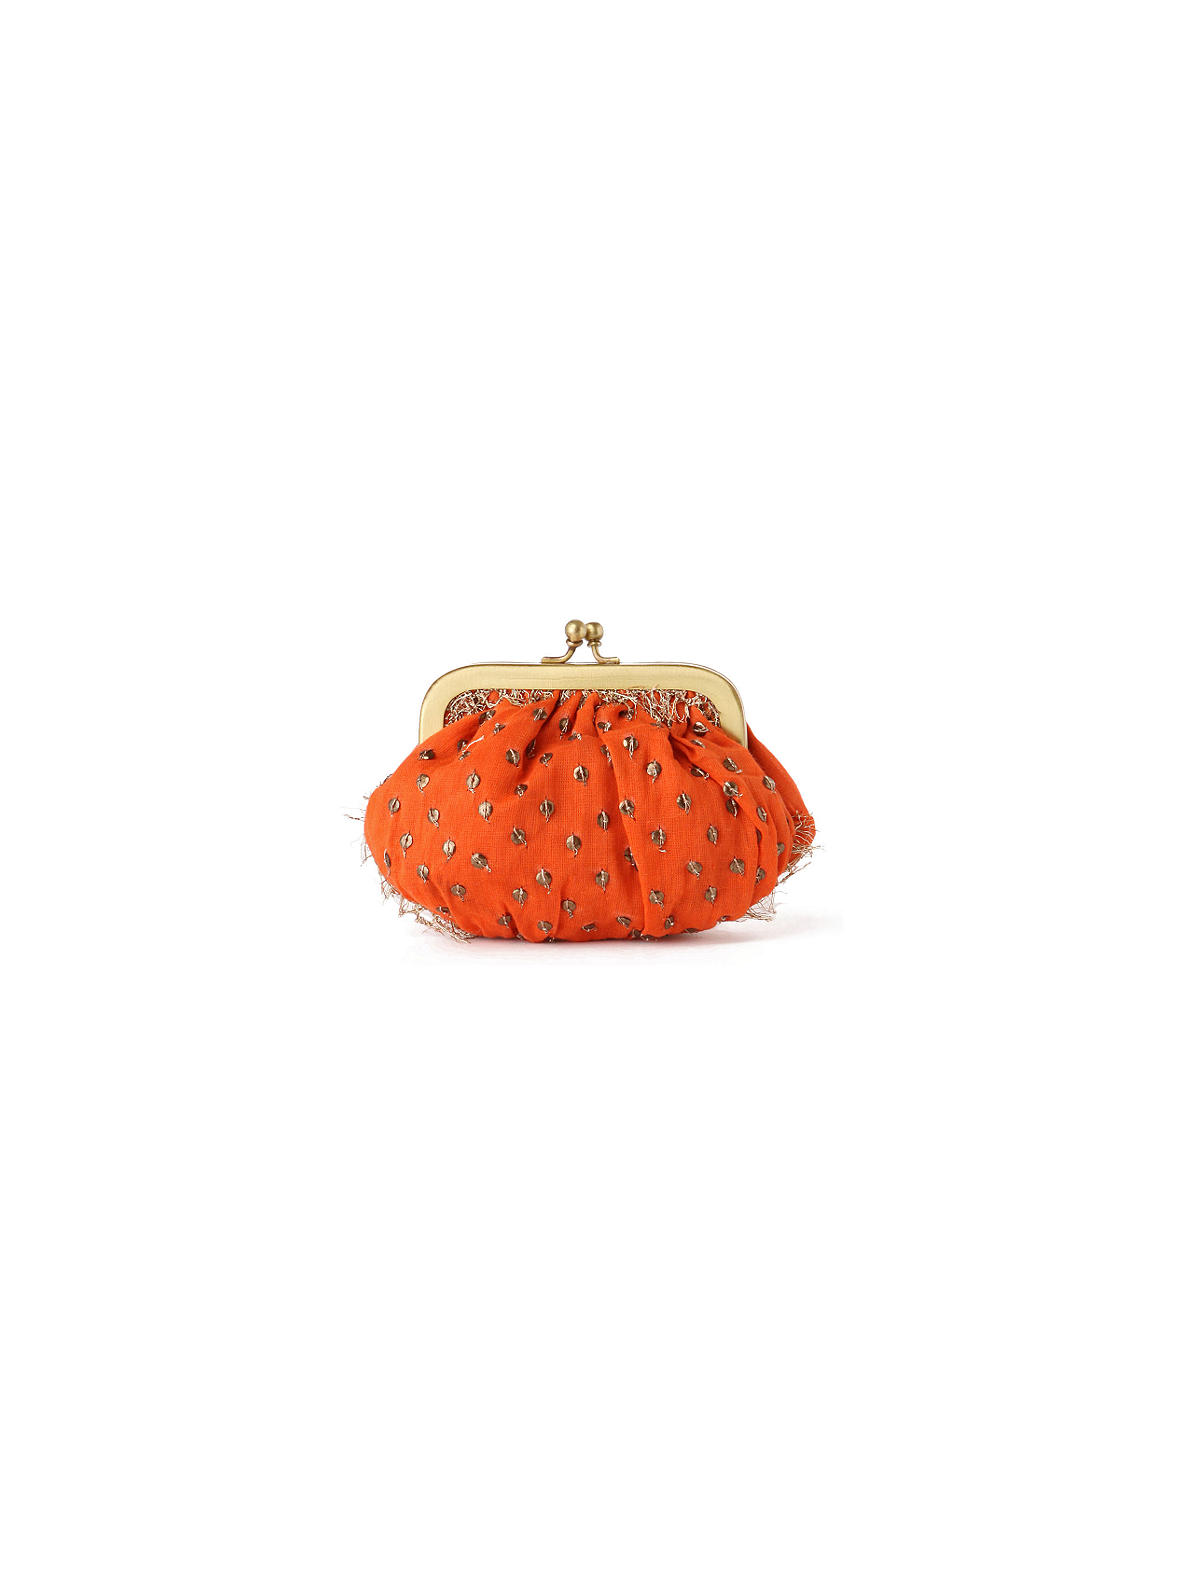 Glitzy Coin Carrier - Anthropologie.com :  fashion accessory design designer anthropologie